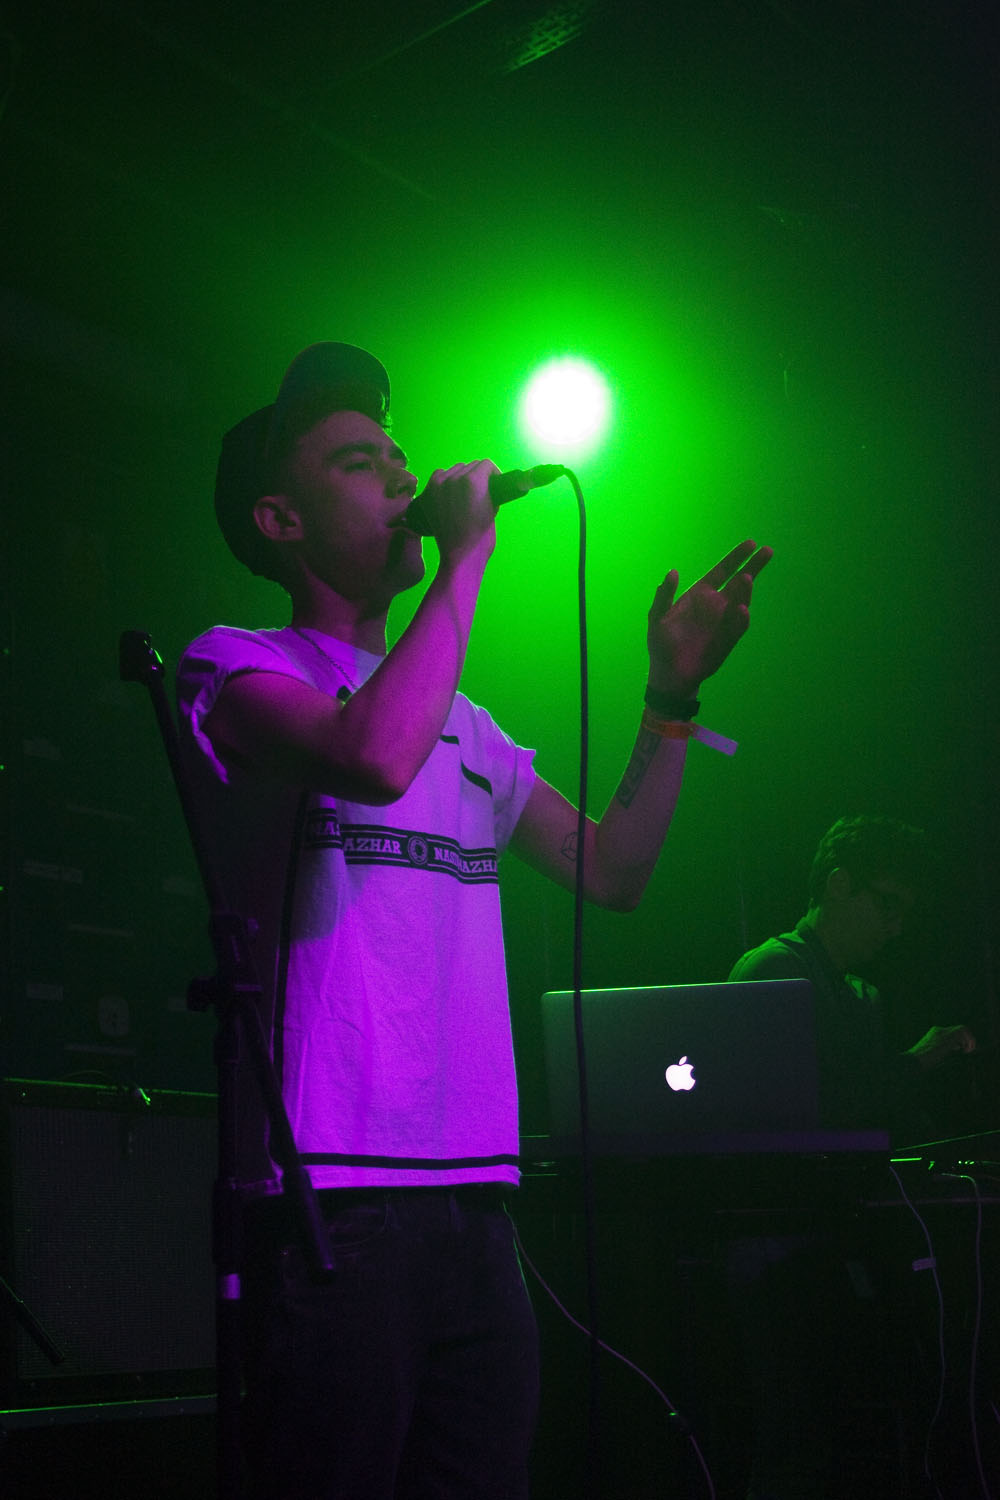 Years and Years @ Dot to Dot Festival, Manchester 2014